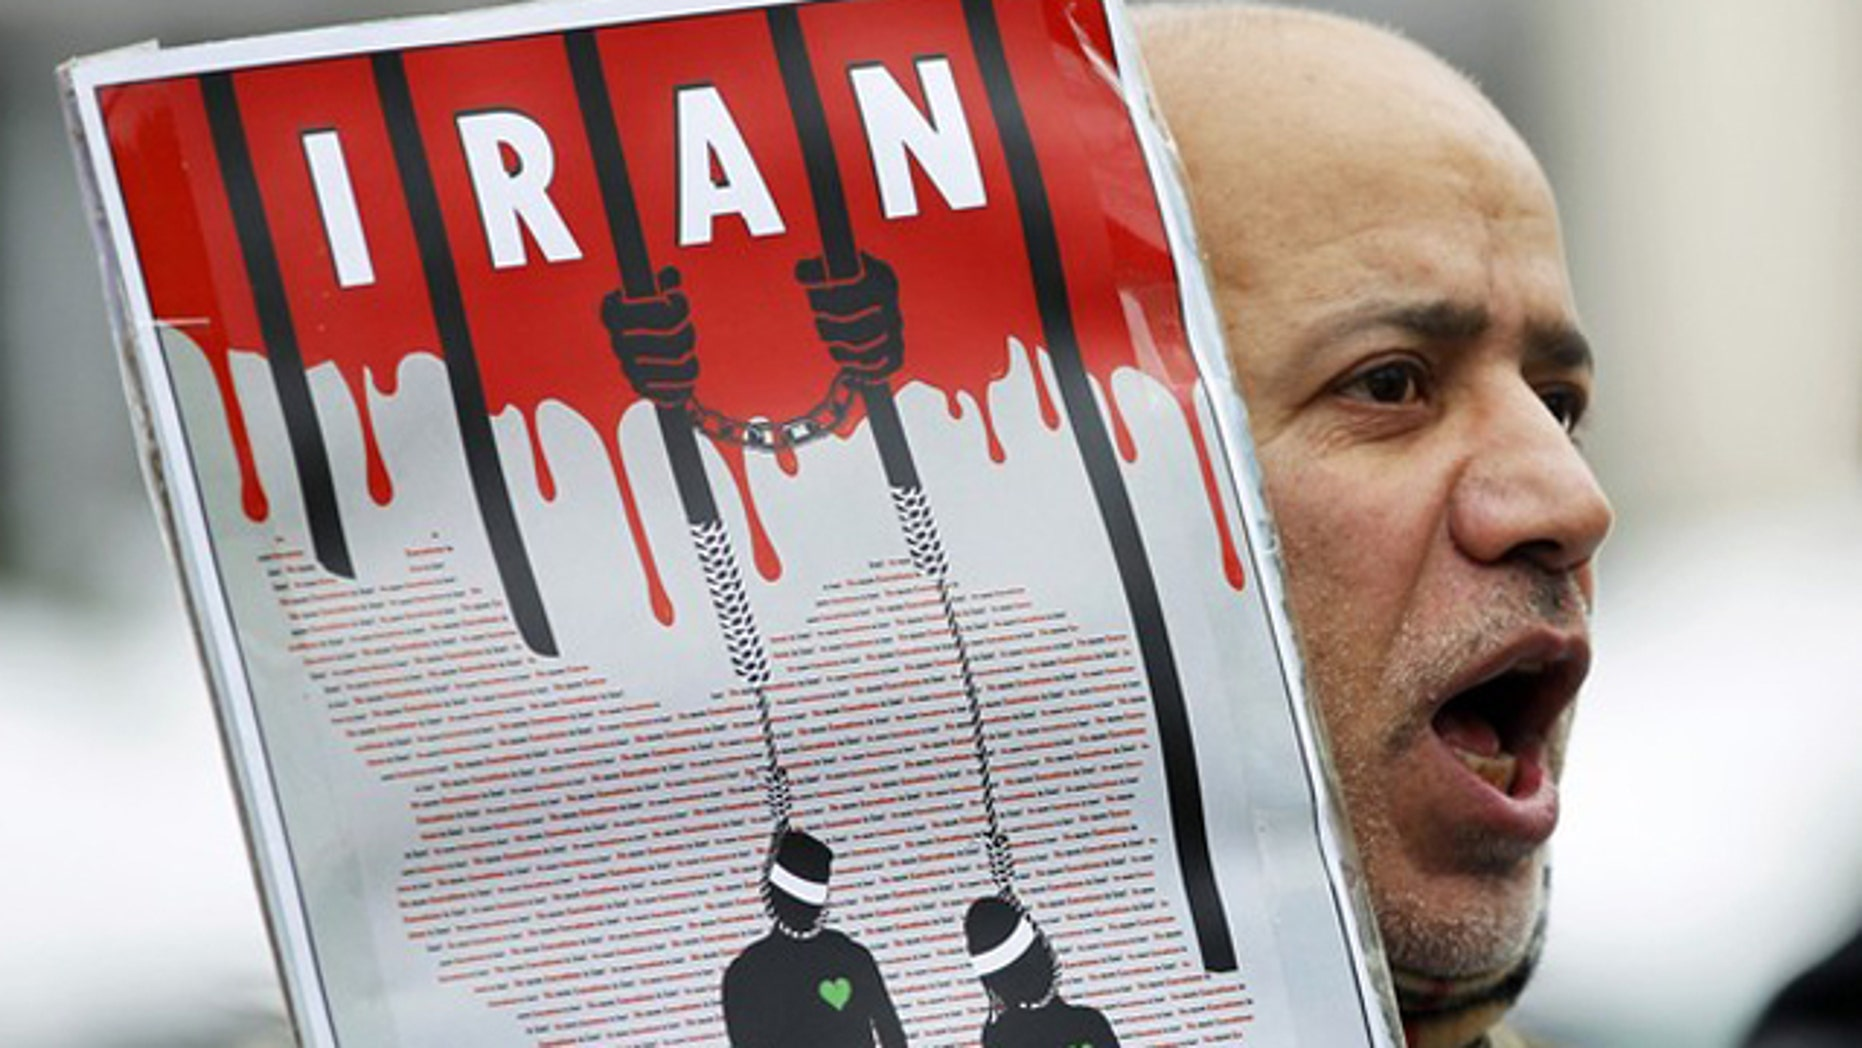 Iran is becoming more professional and organized in online repression